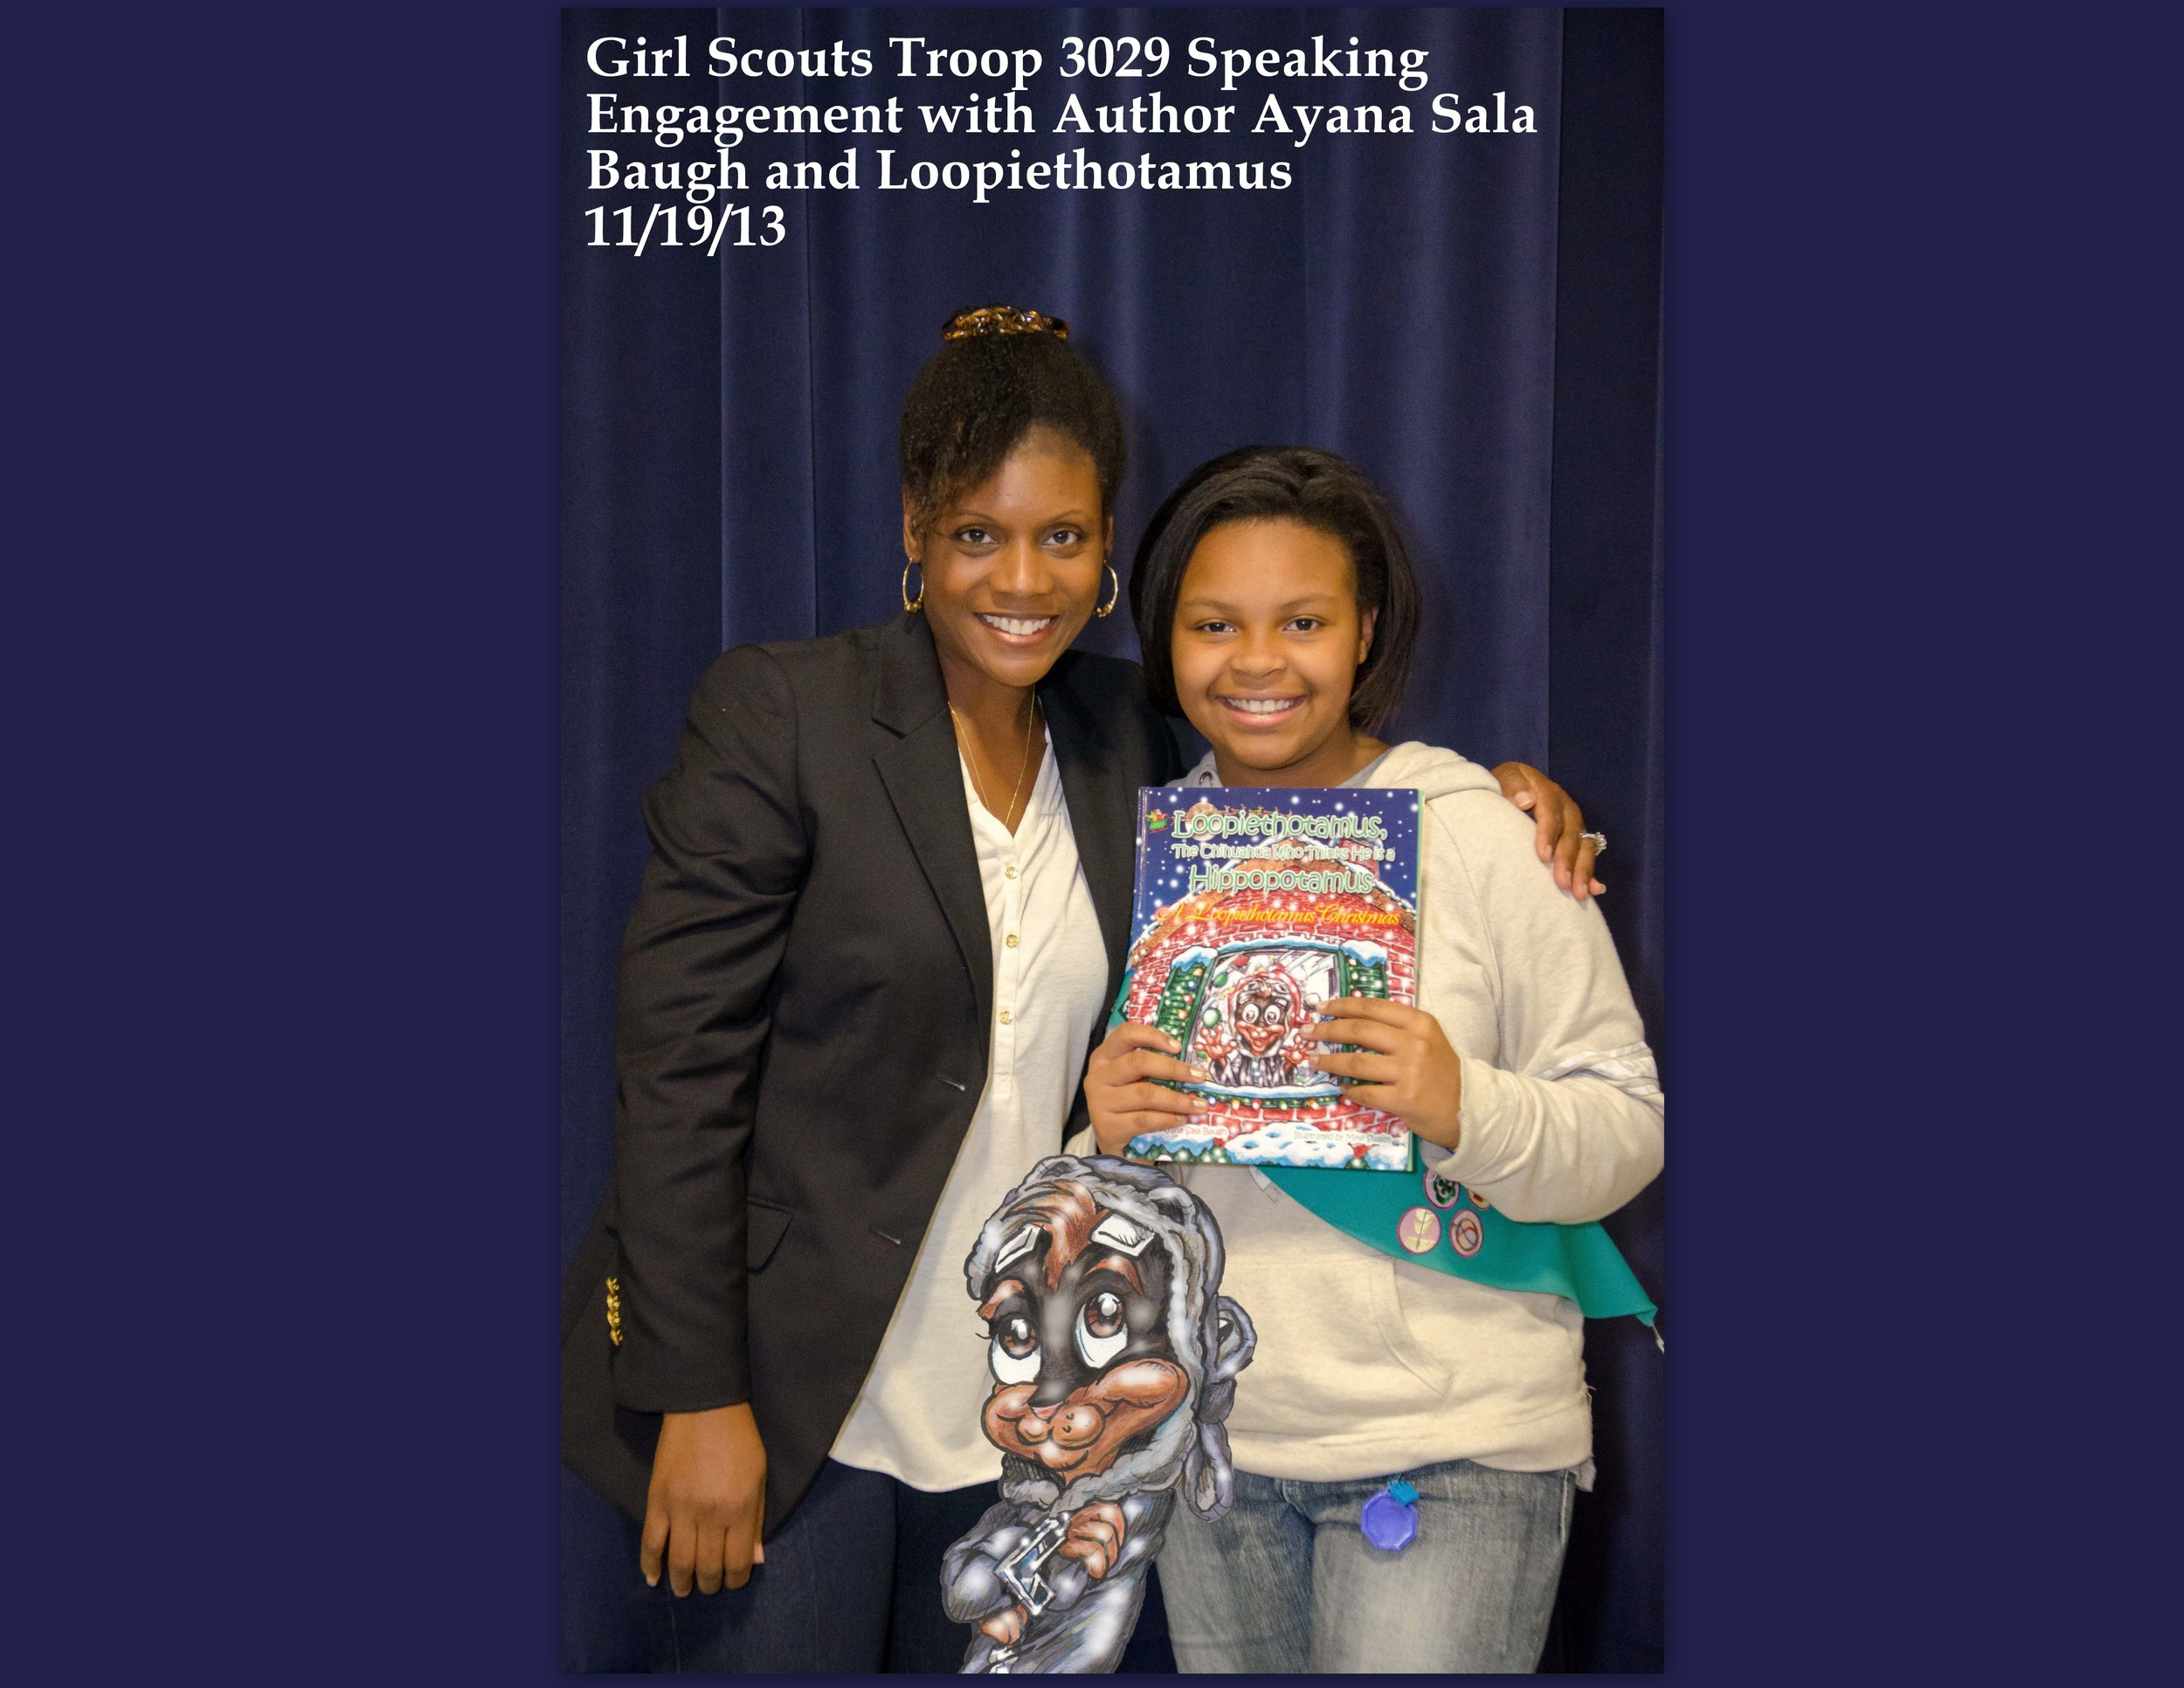 Speaking Engagement with Girl Scouts Troop 3029 111913 2.jpg